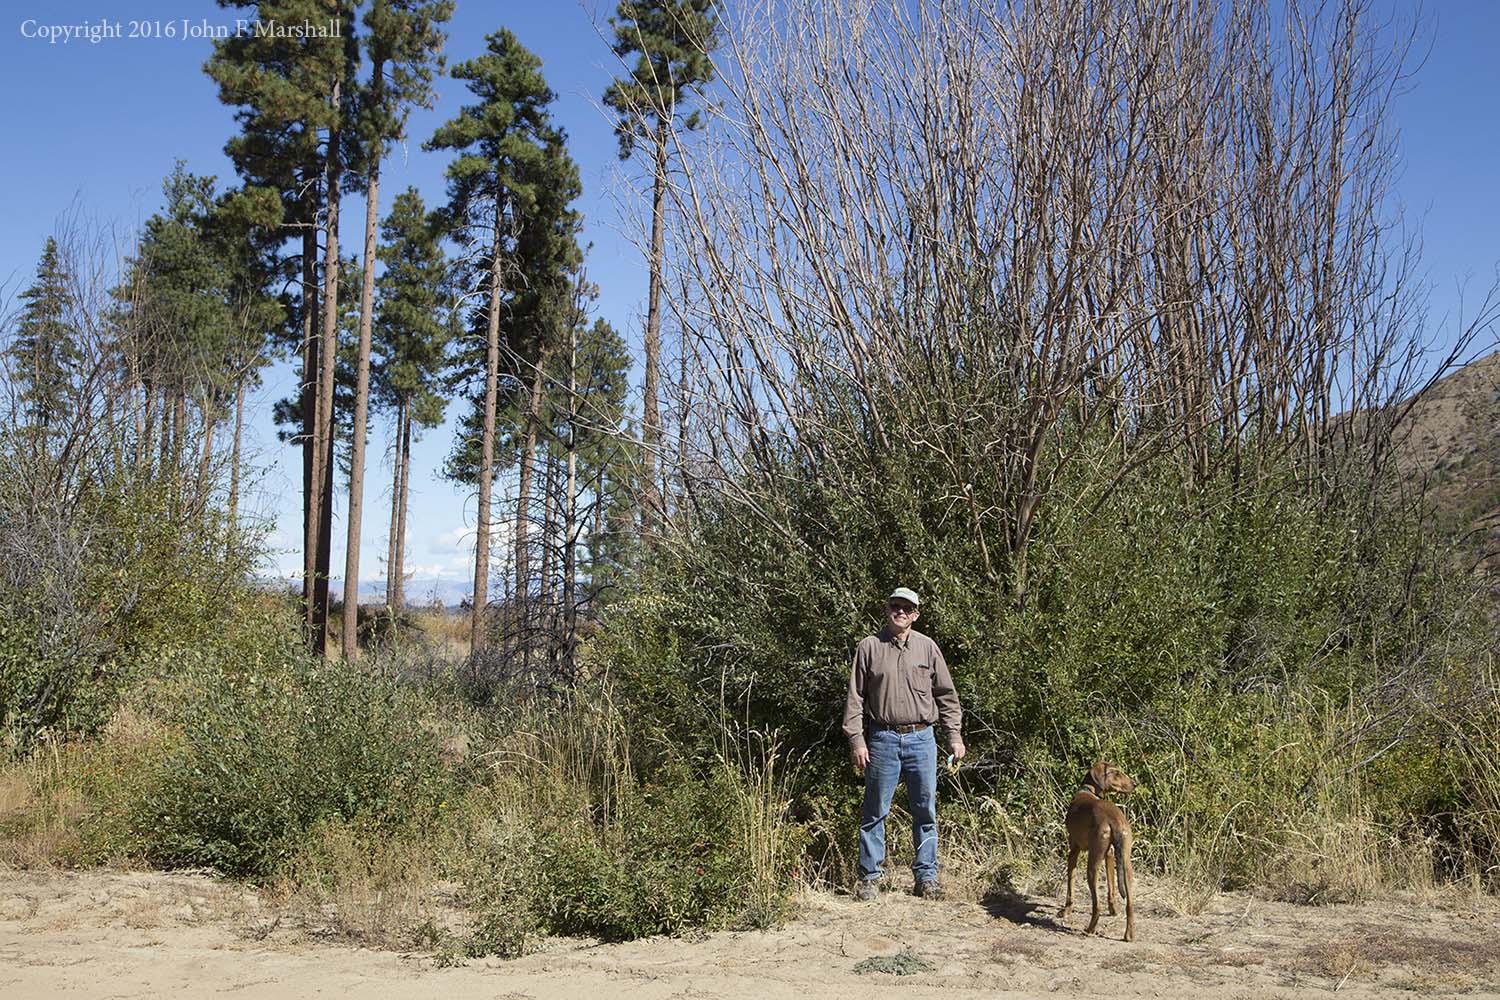 The willows behind me have grown tremendously in the two years since the Mills Canyon Fire of 2014.  Behind me are some of the few remaining large ponderosa pines.